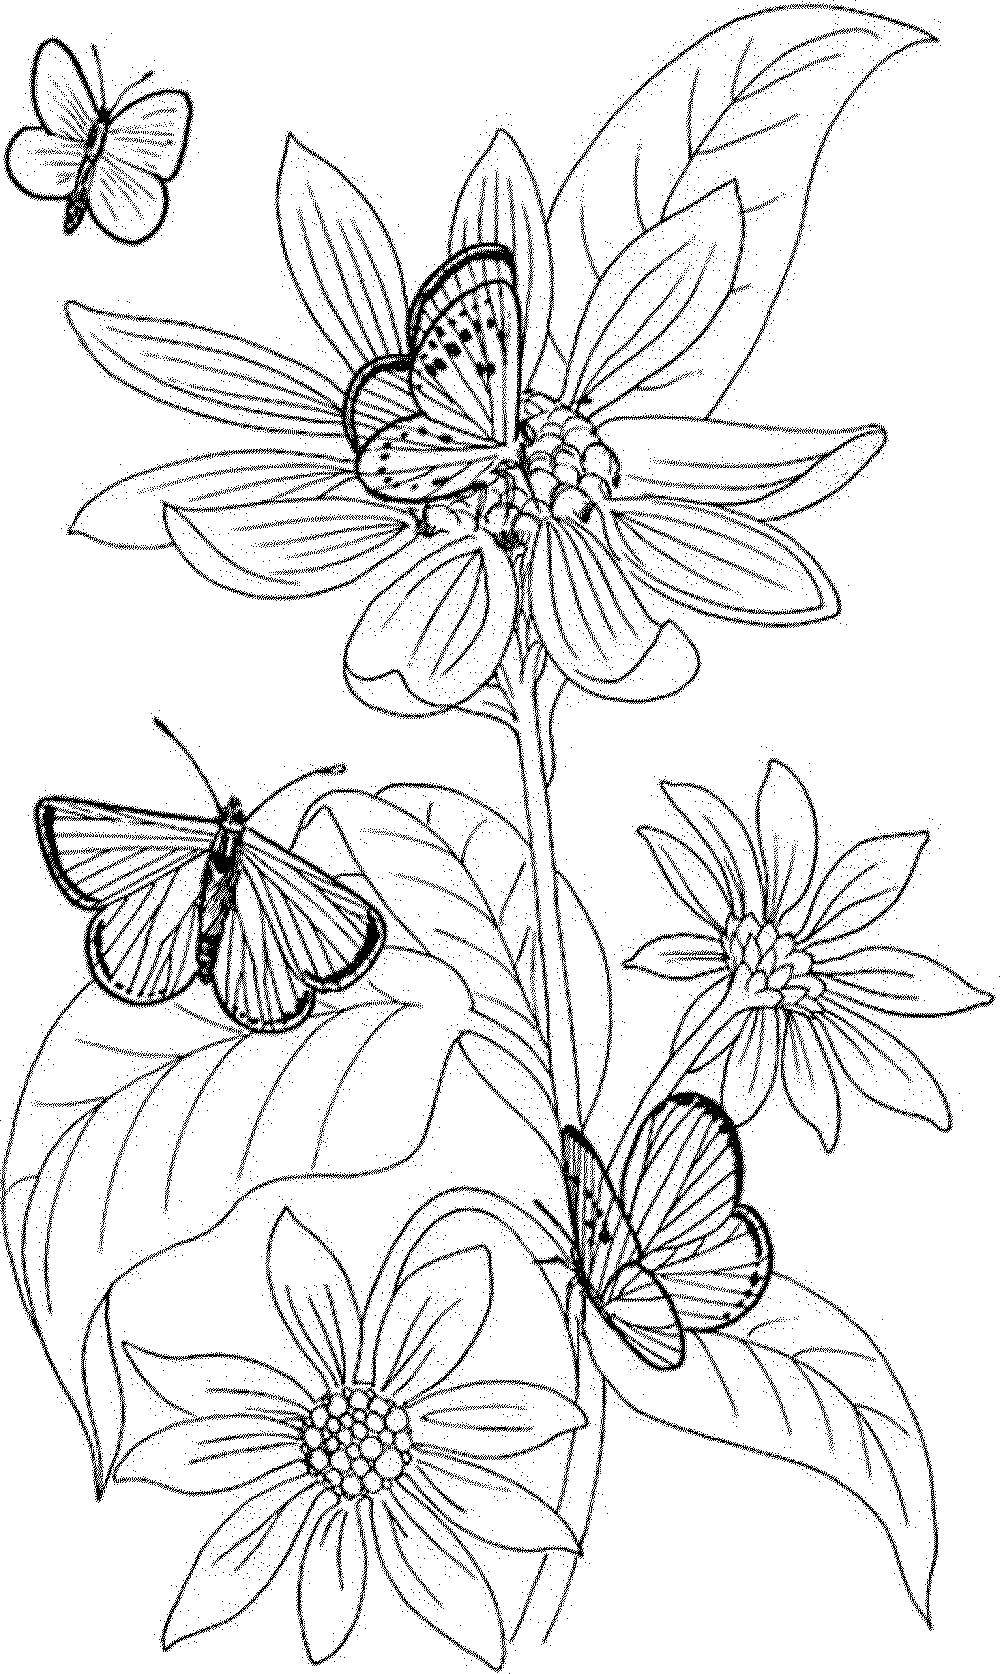 Printable coloring pages for adults flowers - Free Coloring Pages For Adults Printable